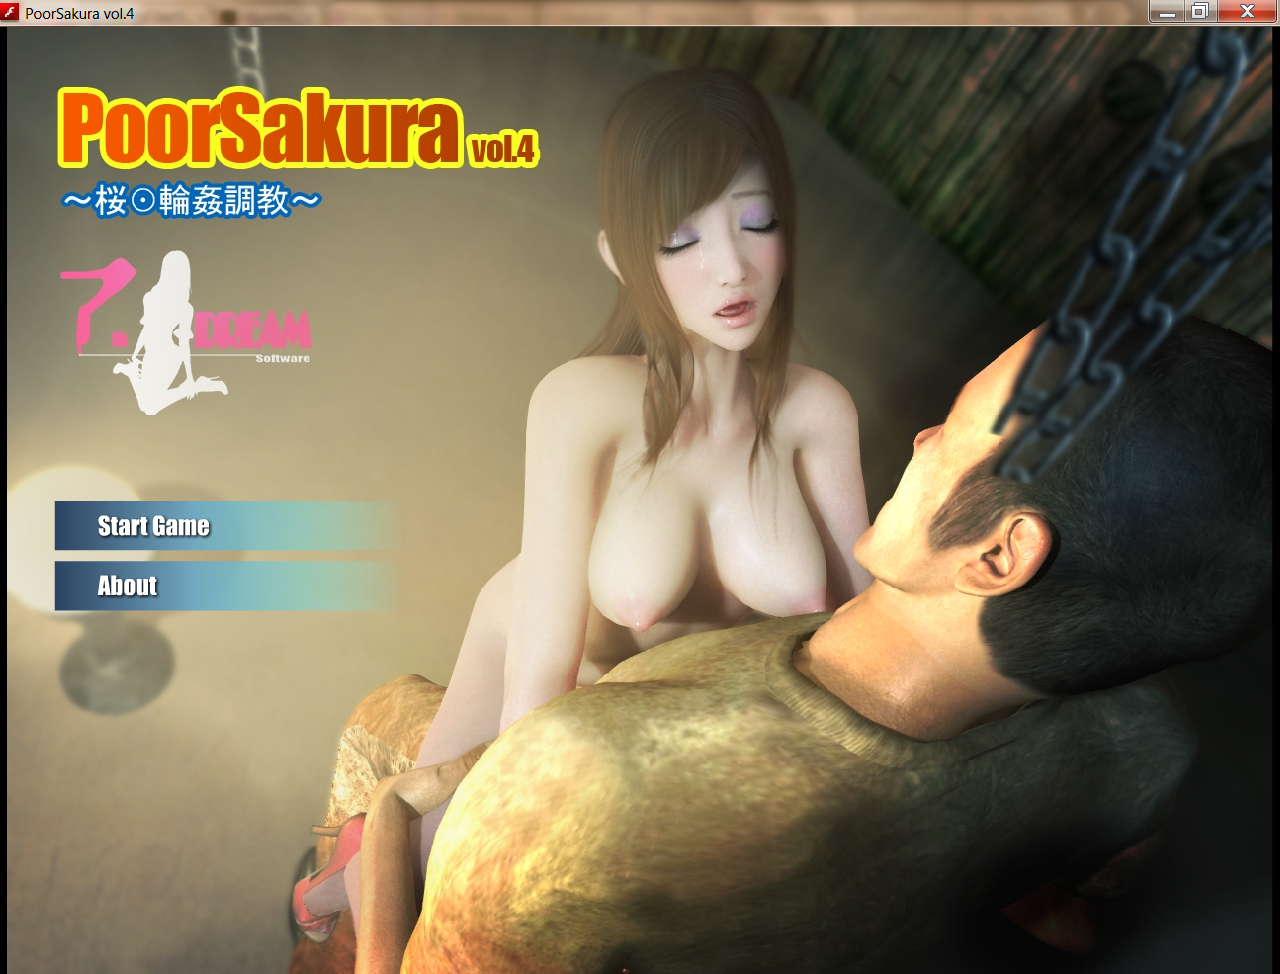 poor sakura vol.5 » download hentai games